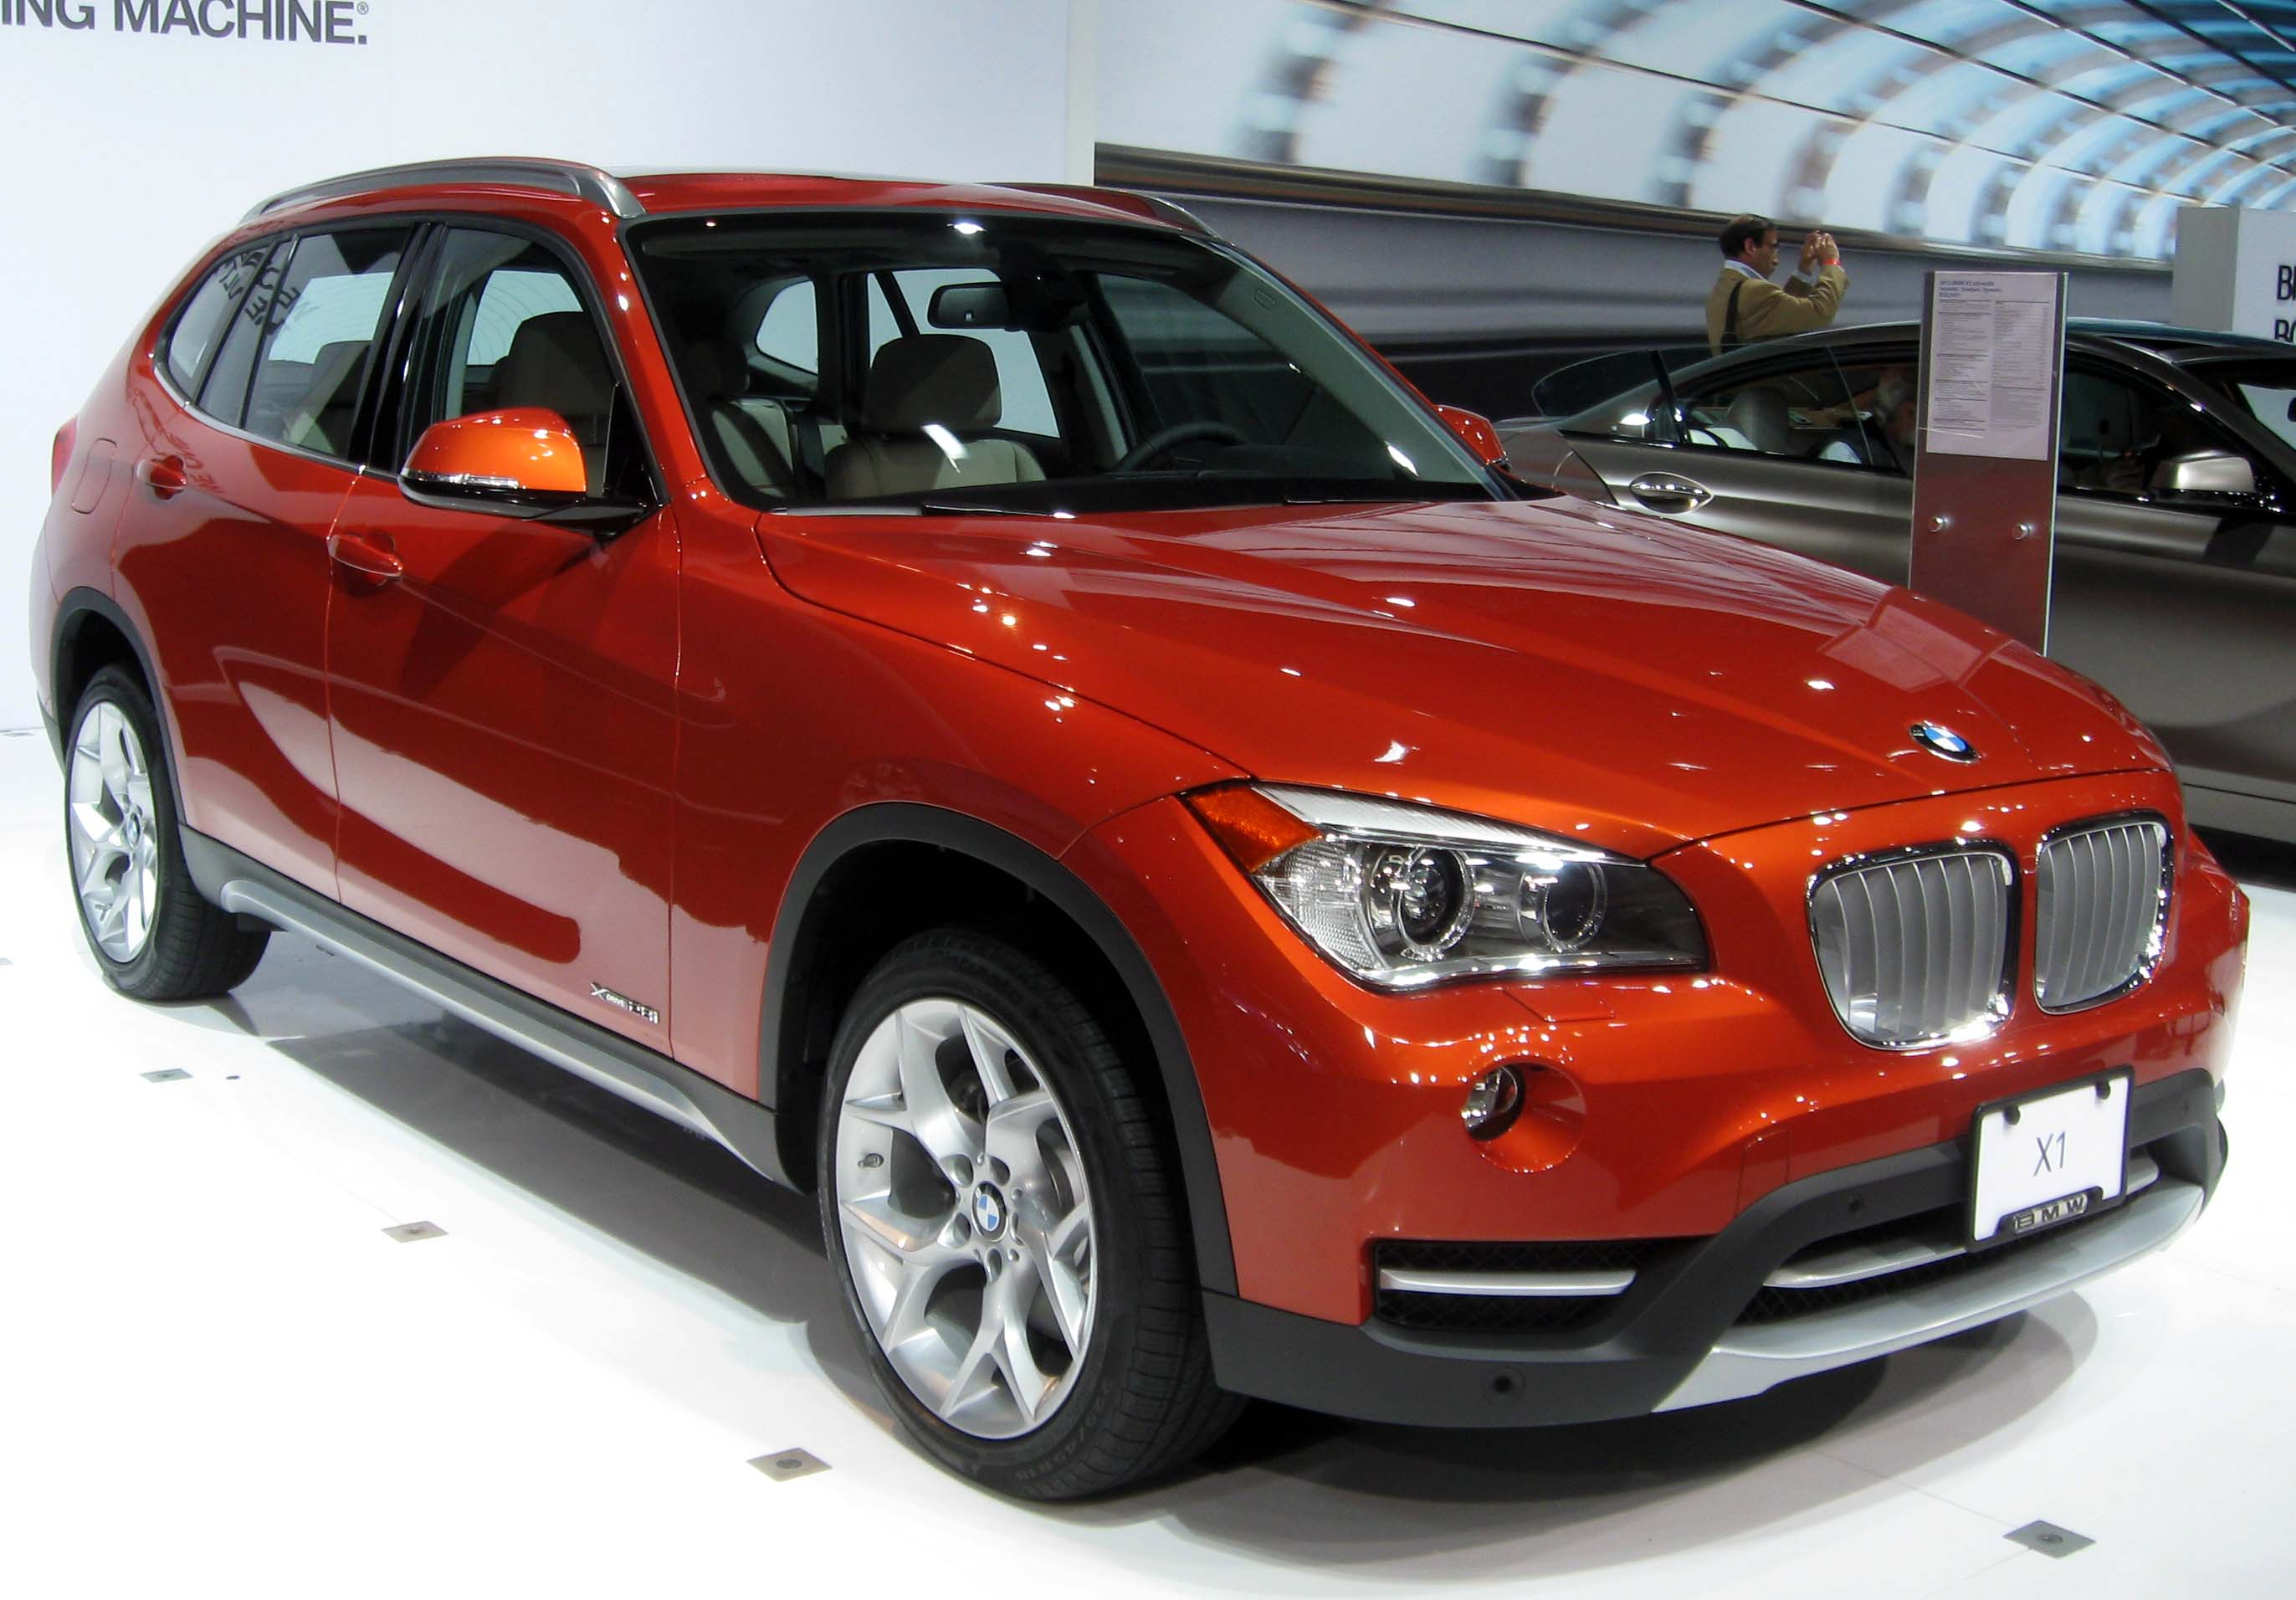 file 2013 bmw x1 2012 nyias jpg wikimedia commons. Black Bedroom Furniture Sets. Home Design Ideas